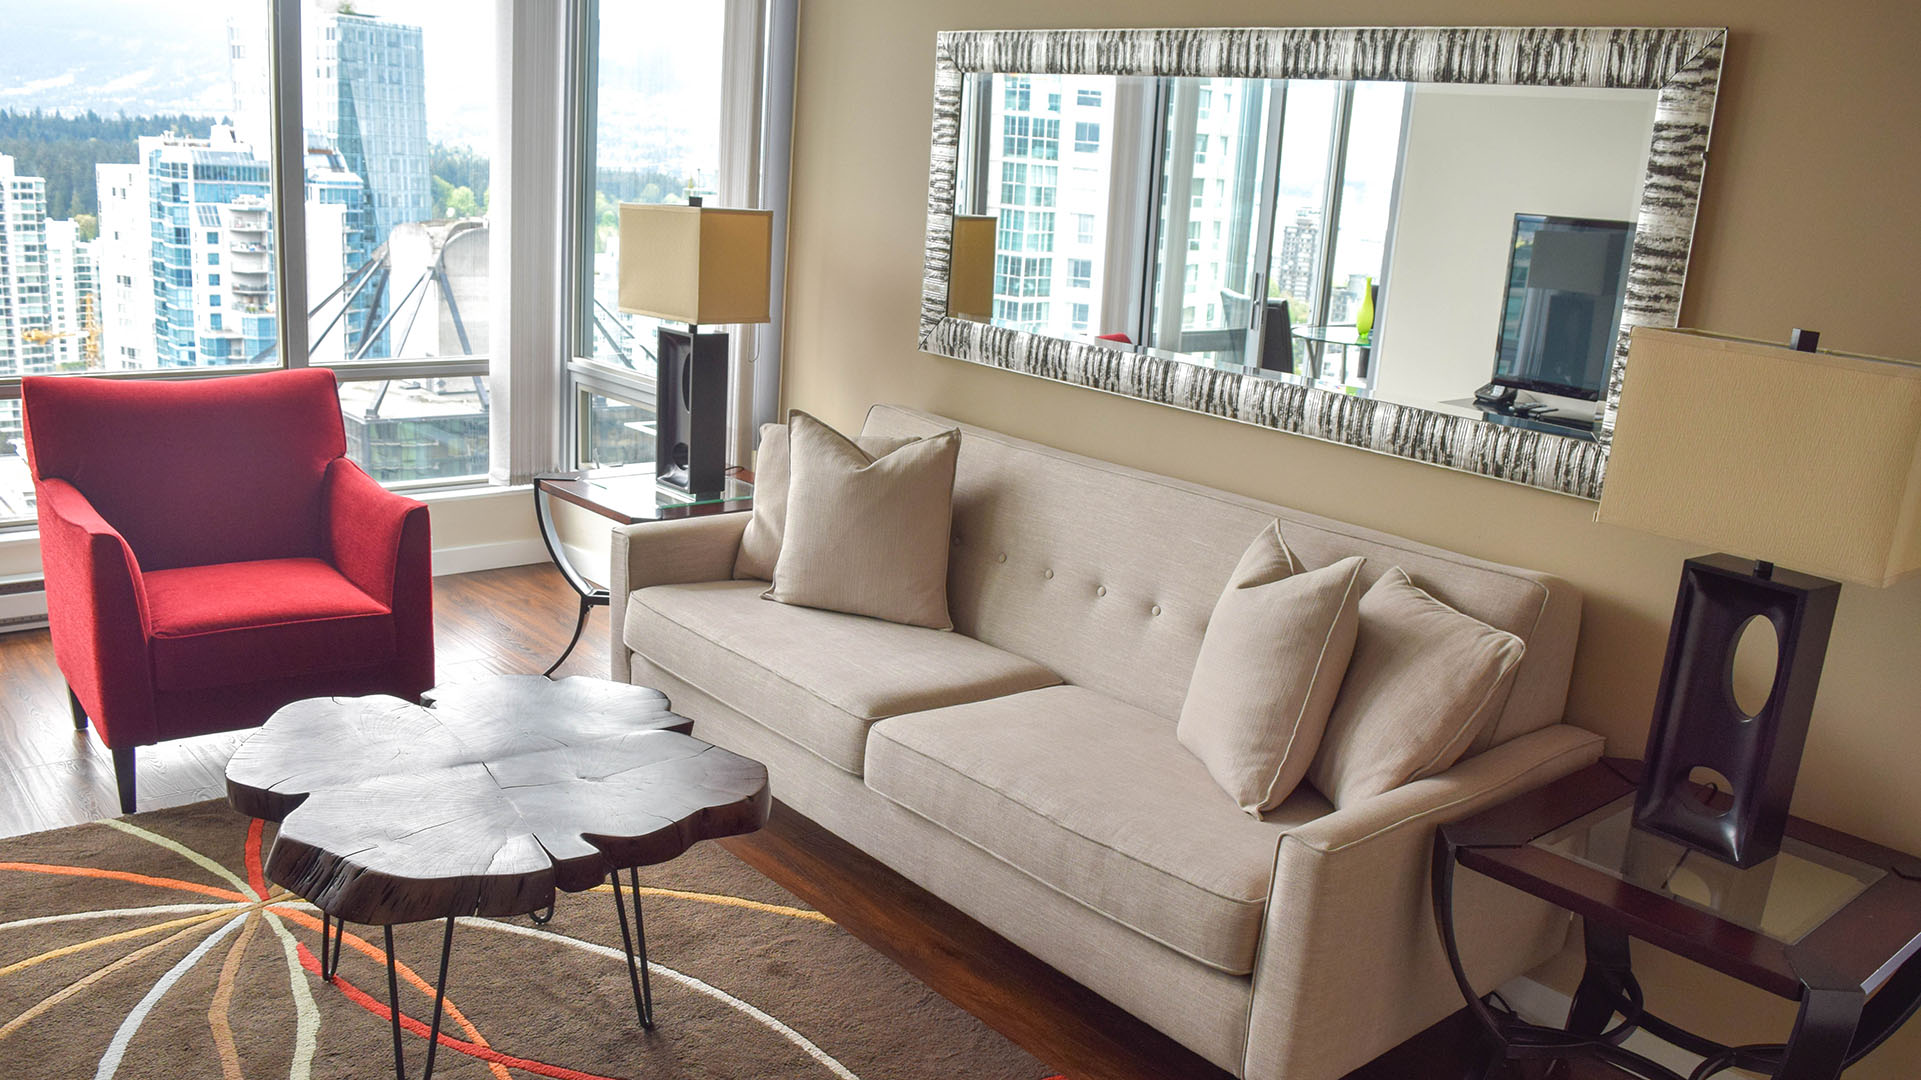 Photo of fully furnished apartment #2602 at The Residences on Georgia, 1288 West Georgia Street, Vancouver, BC